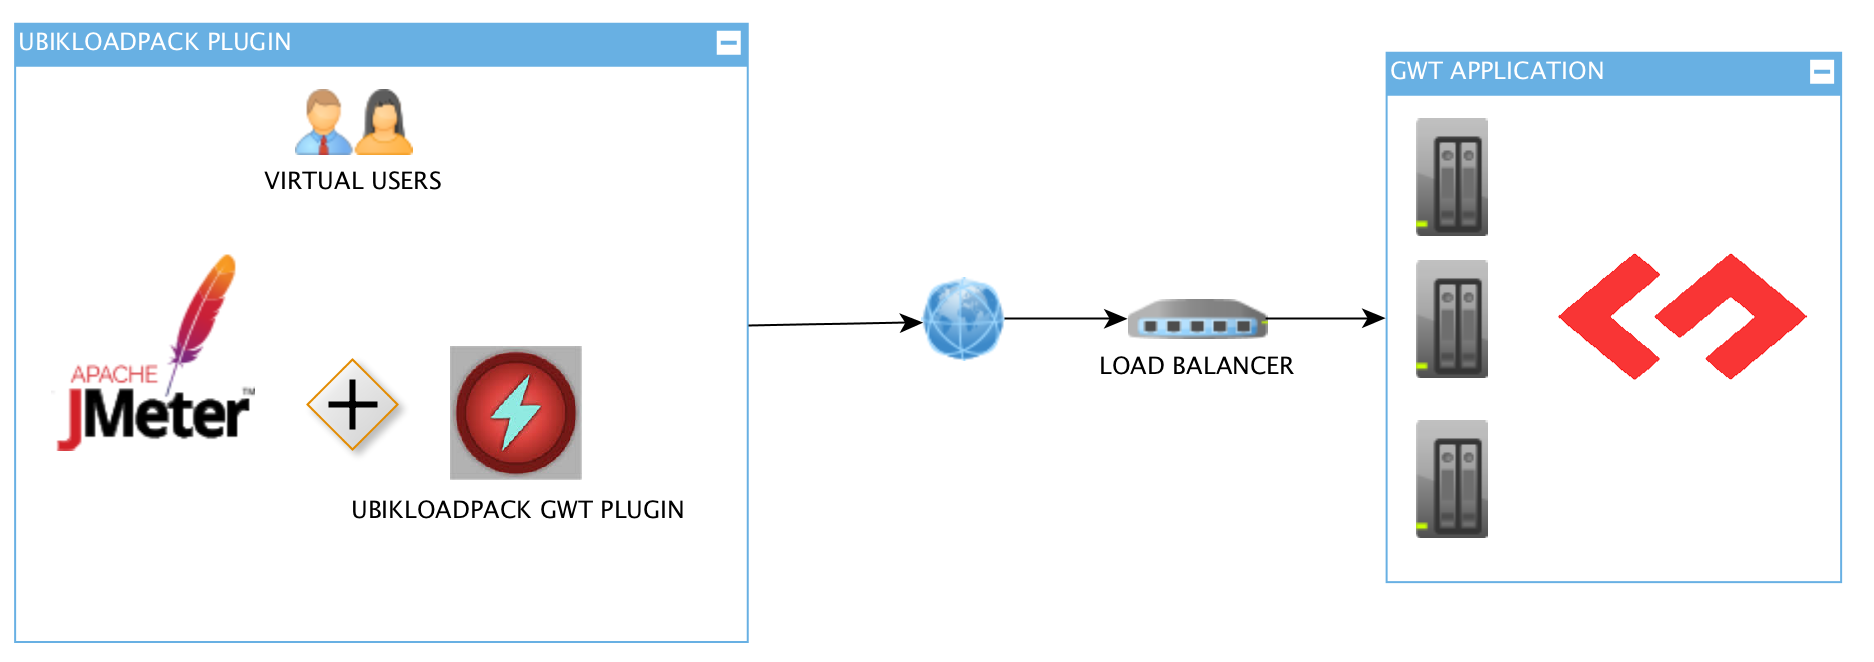 Load testing gwt rpc applications with ubik load pack plugin for load testing gwt rpc applications with ubikloadpack plugin for jmeter baditri Image collections